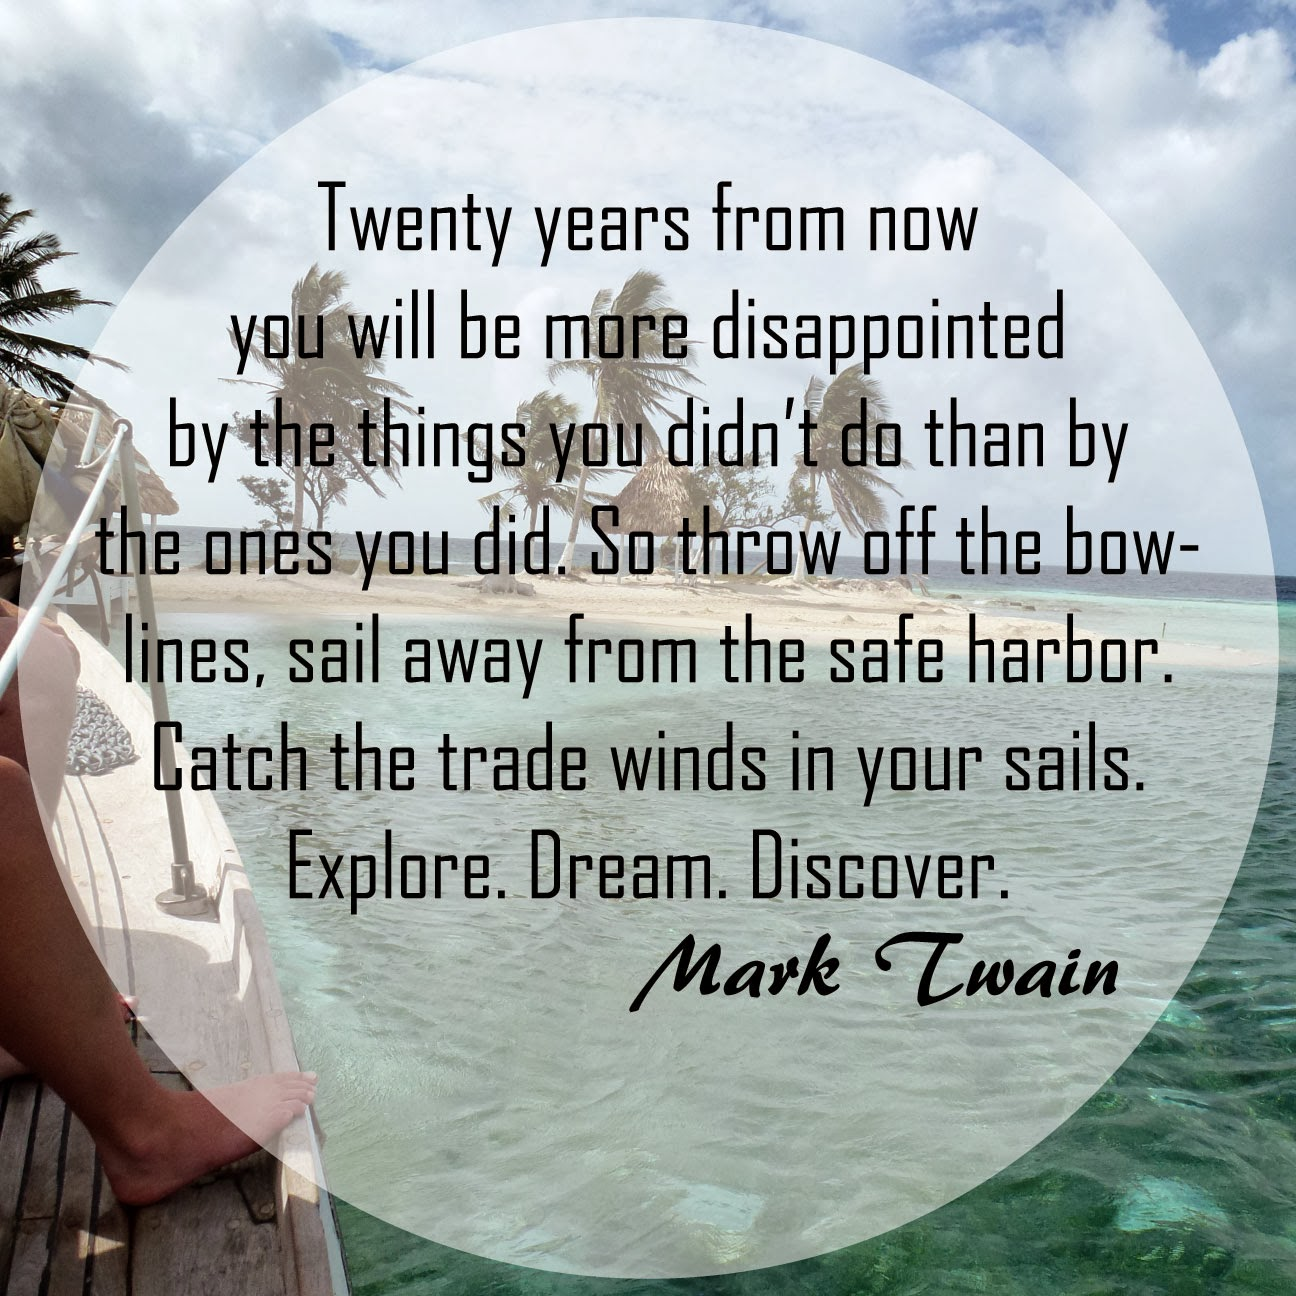 20 Of The Most Inspiring Travel Quotes Of All Time: Travel Quotes To Inspire!